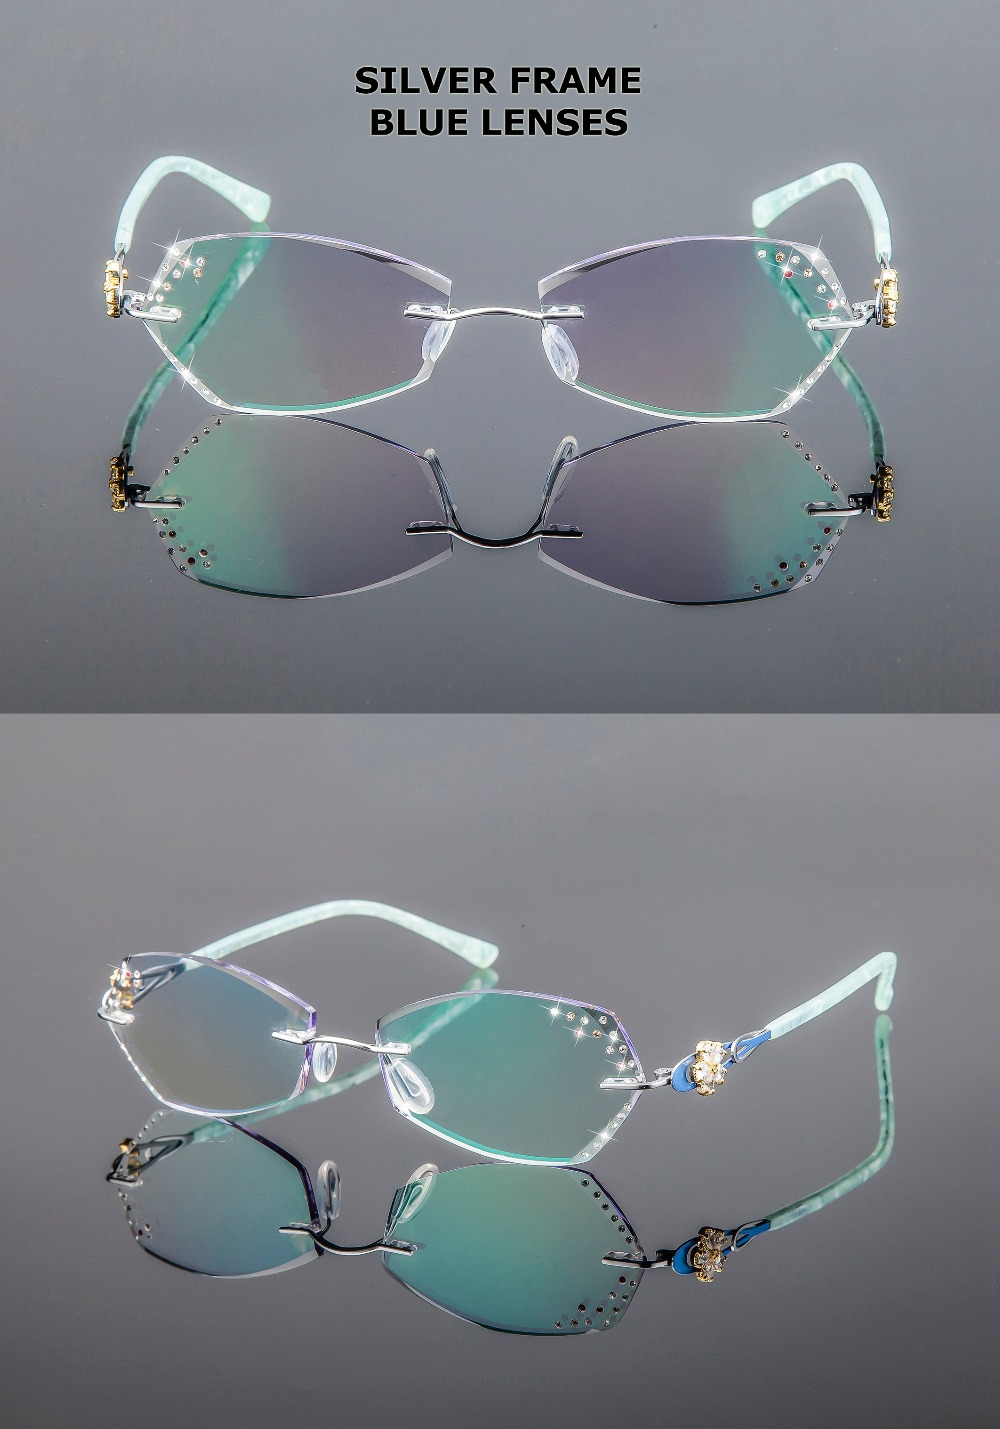 d4ad6d791e90 Yi Jiang Nan Brand Diamond Glasses Pure Titanium Women Eyeglasses Tint  Lenses Blue Lenses Flower Rimless Eyeglasses